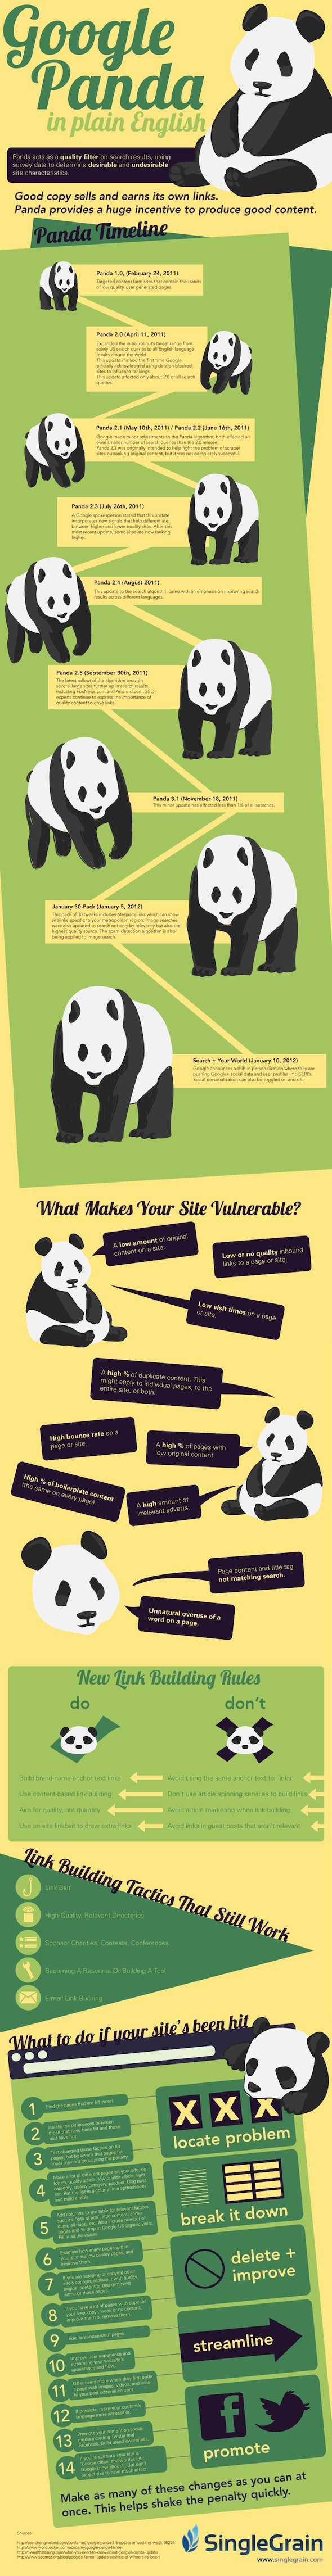 Easy Way to Understand Google's Panda